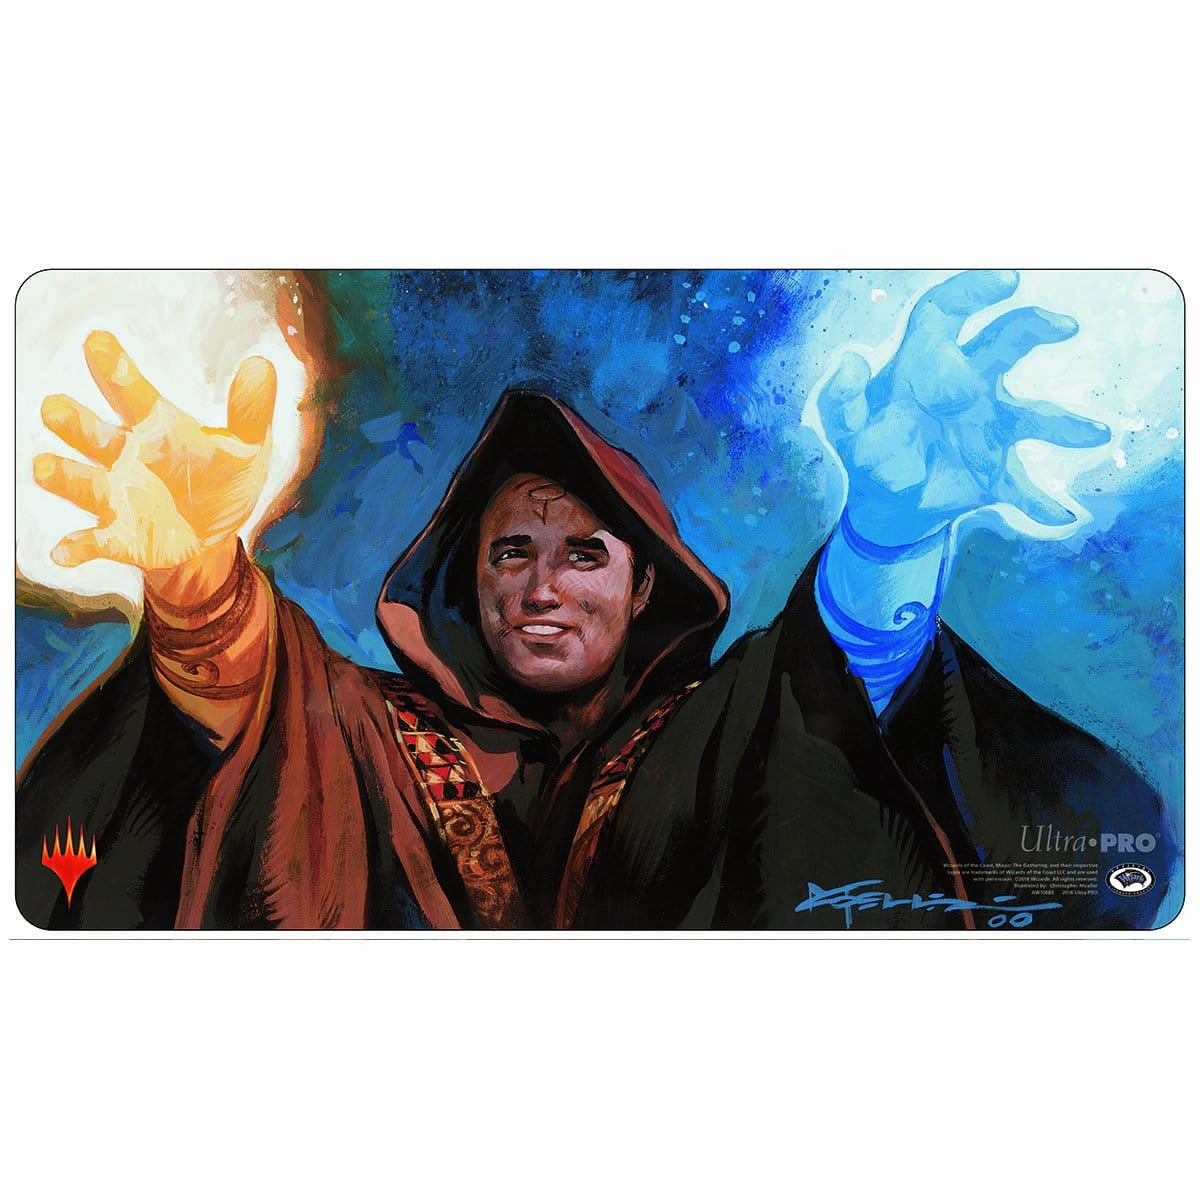 Meddling Mage Playmat